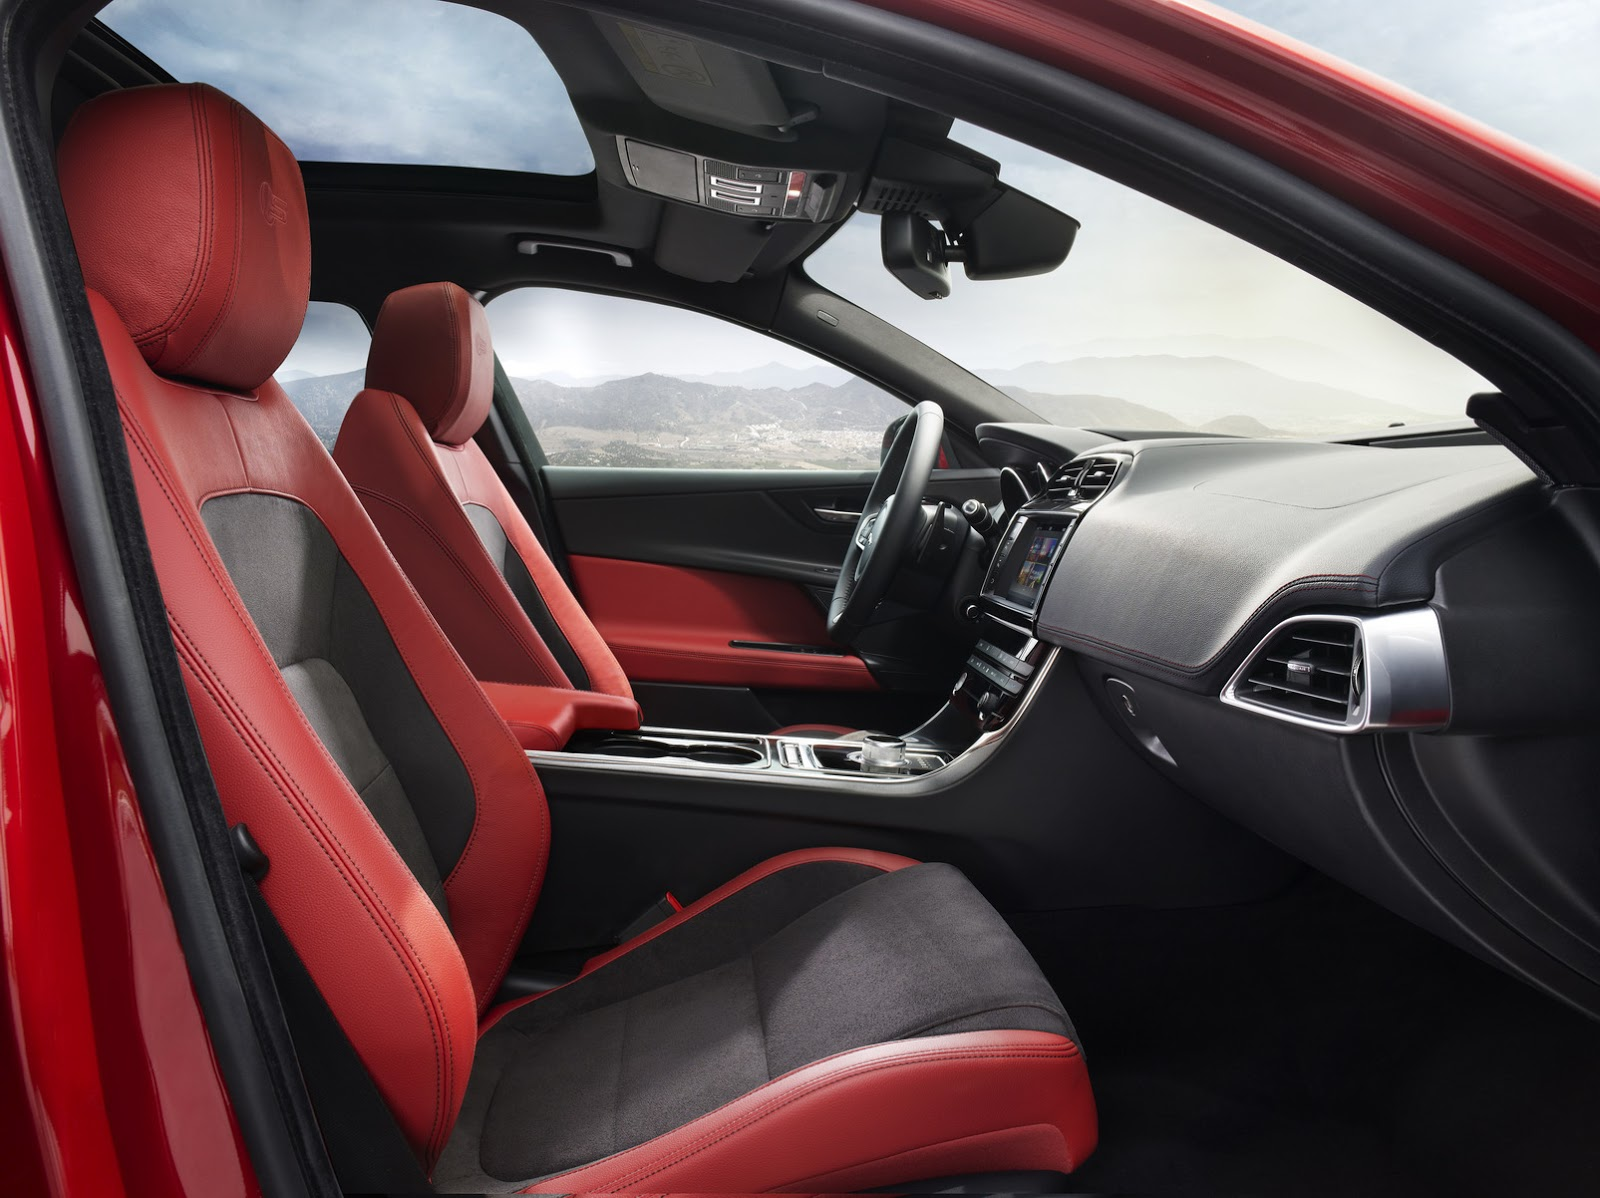 New-2016-Jaguar-XE-officially-revealed-Images-and-details-23